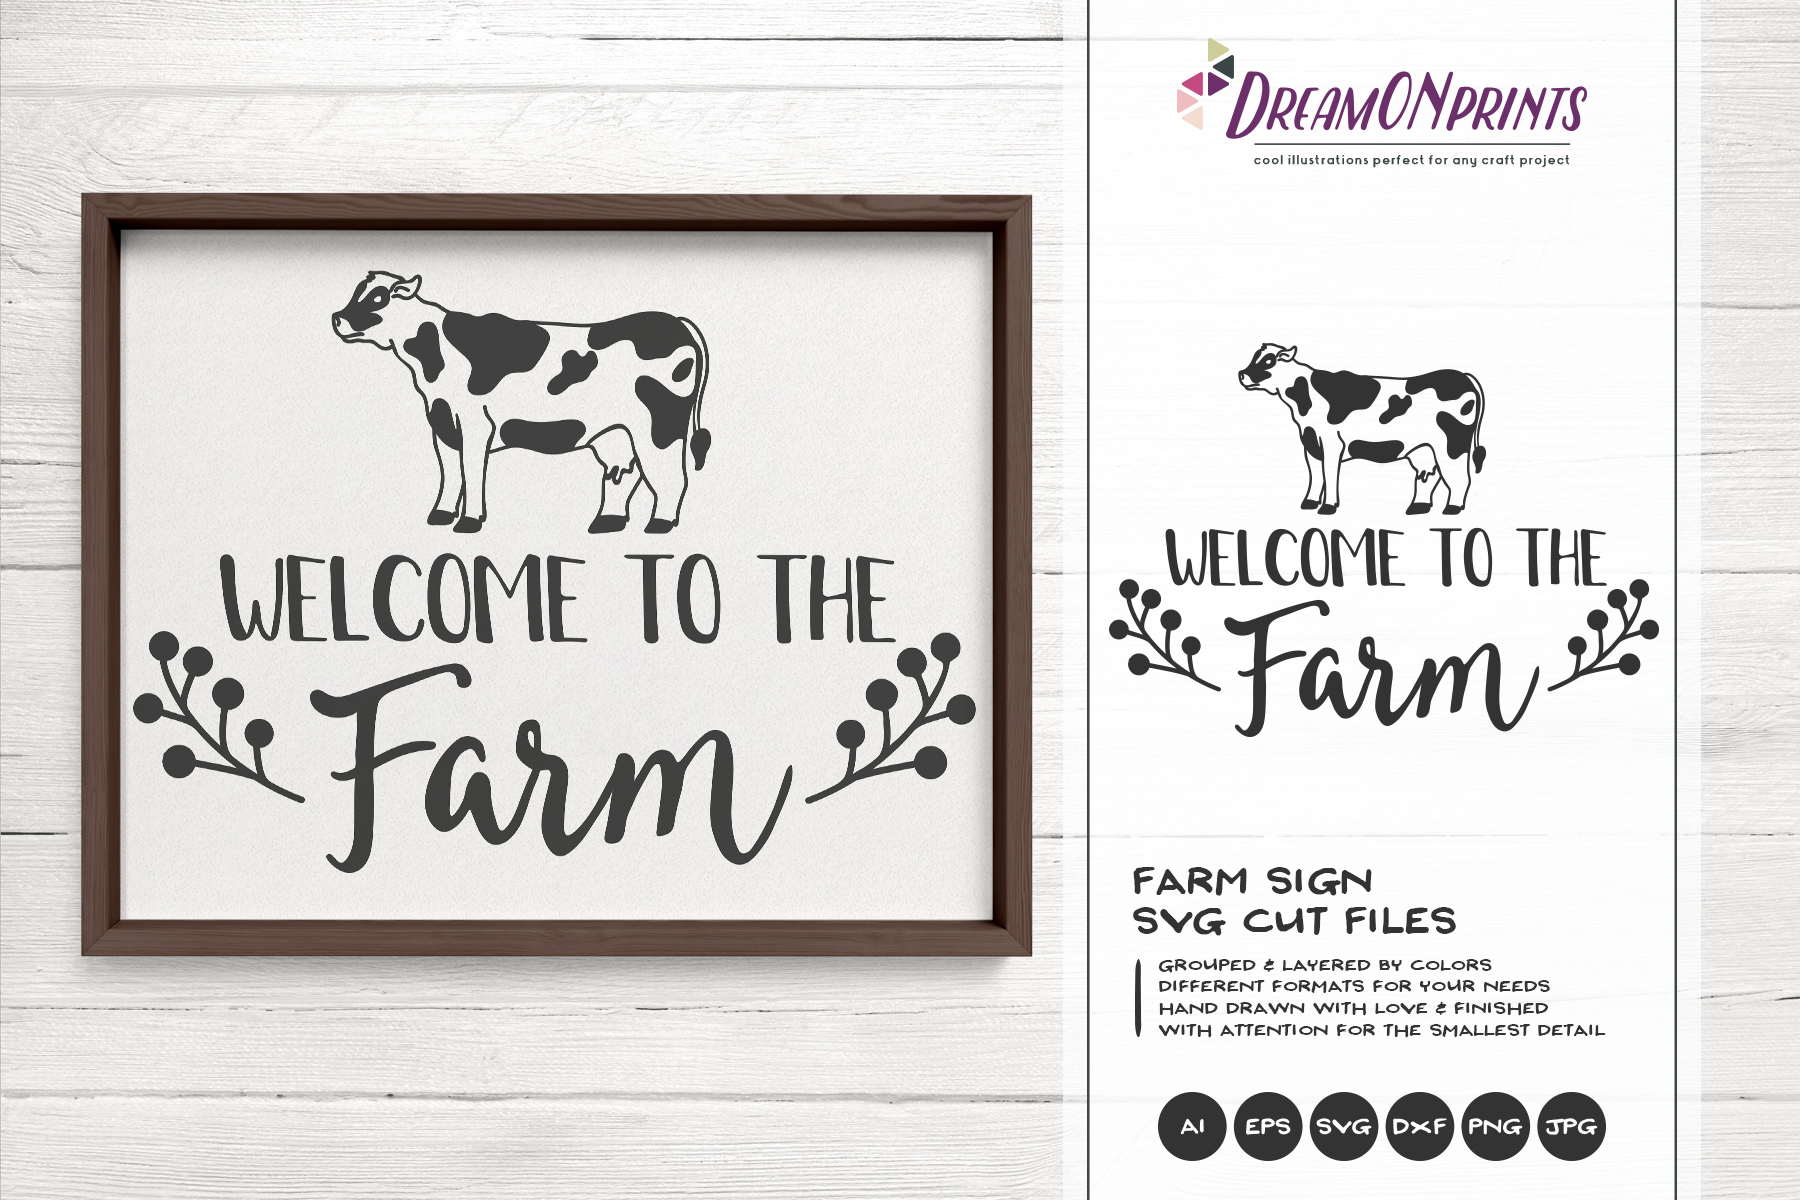 Welcome to the Farm SVG - Cow SVG Cut Files example image 1